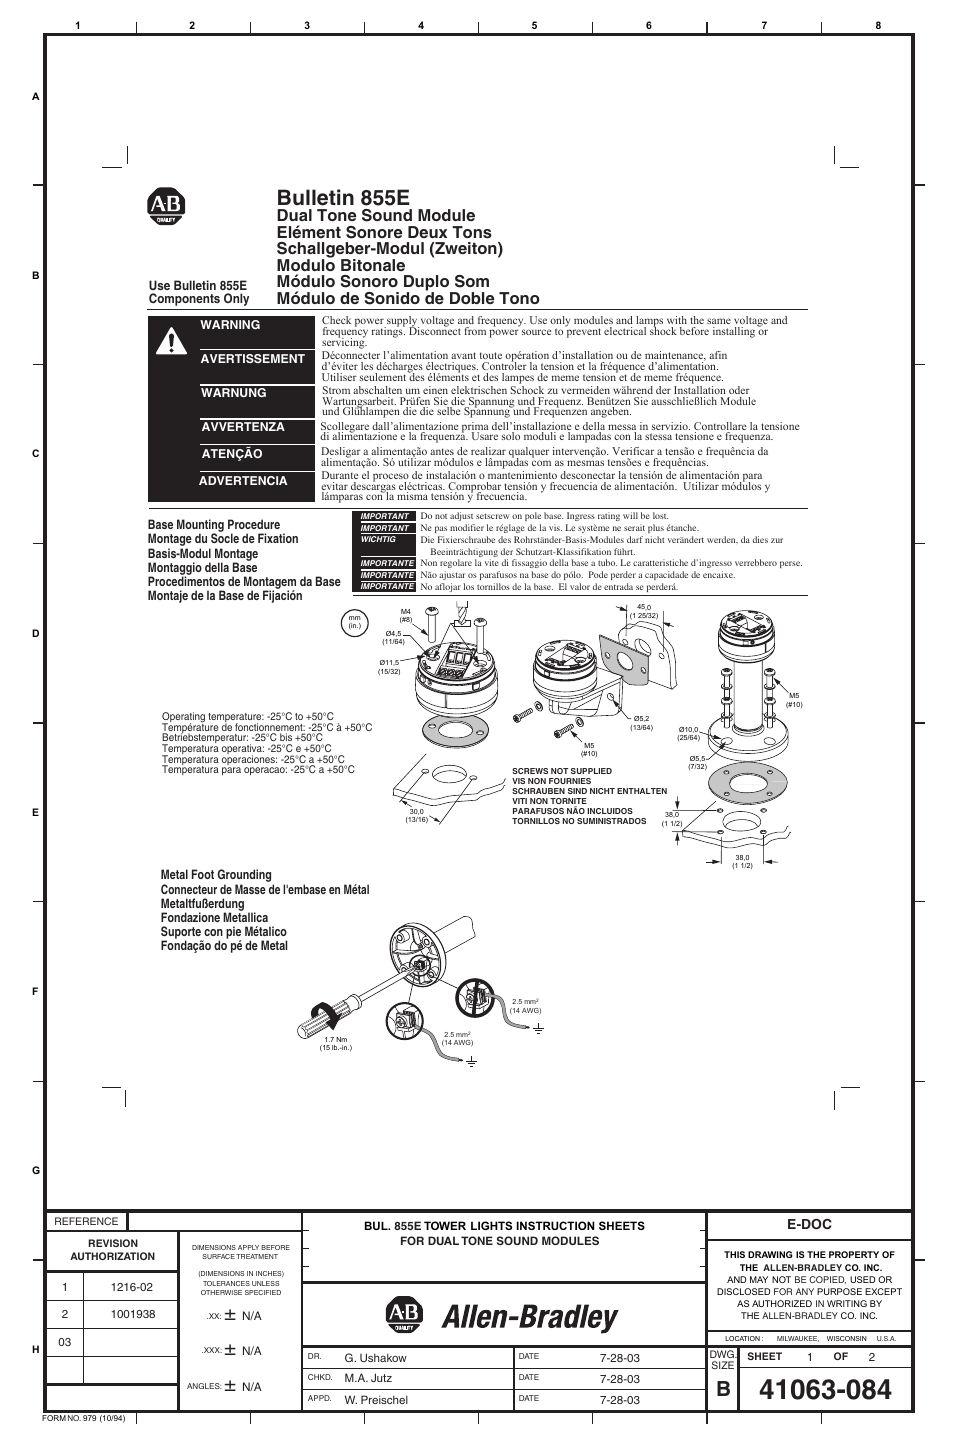 2005 Mazda 6 Engine Diagram 2005 Wiring Diagrams Instruction Intended For 2006 Mazda Tribute Parts Diagram likewise Picoammeter Circuit Diagram furthermore John Deere Clark Powershift 18000 3 Speed Transmission Service Manual Sm Hr in addition Helix3 also Wiring Diagram Electrical Wiring. on home wiring diagrams